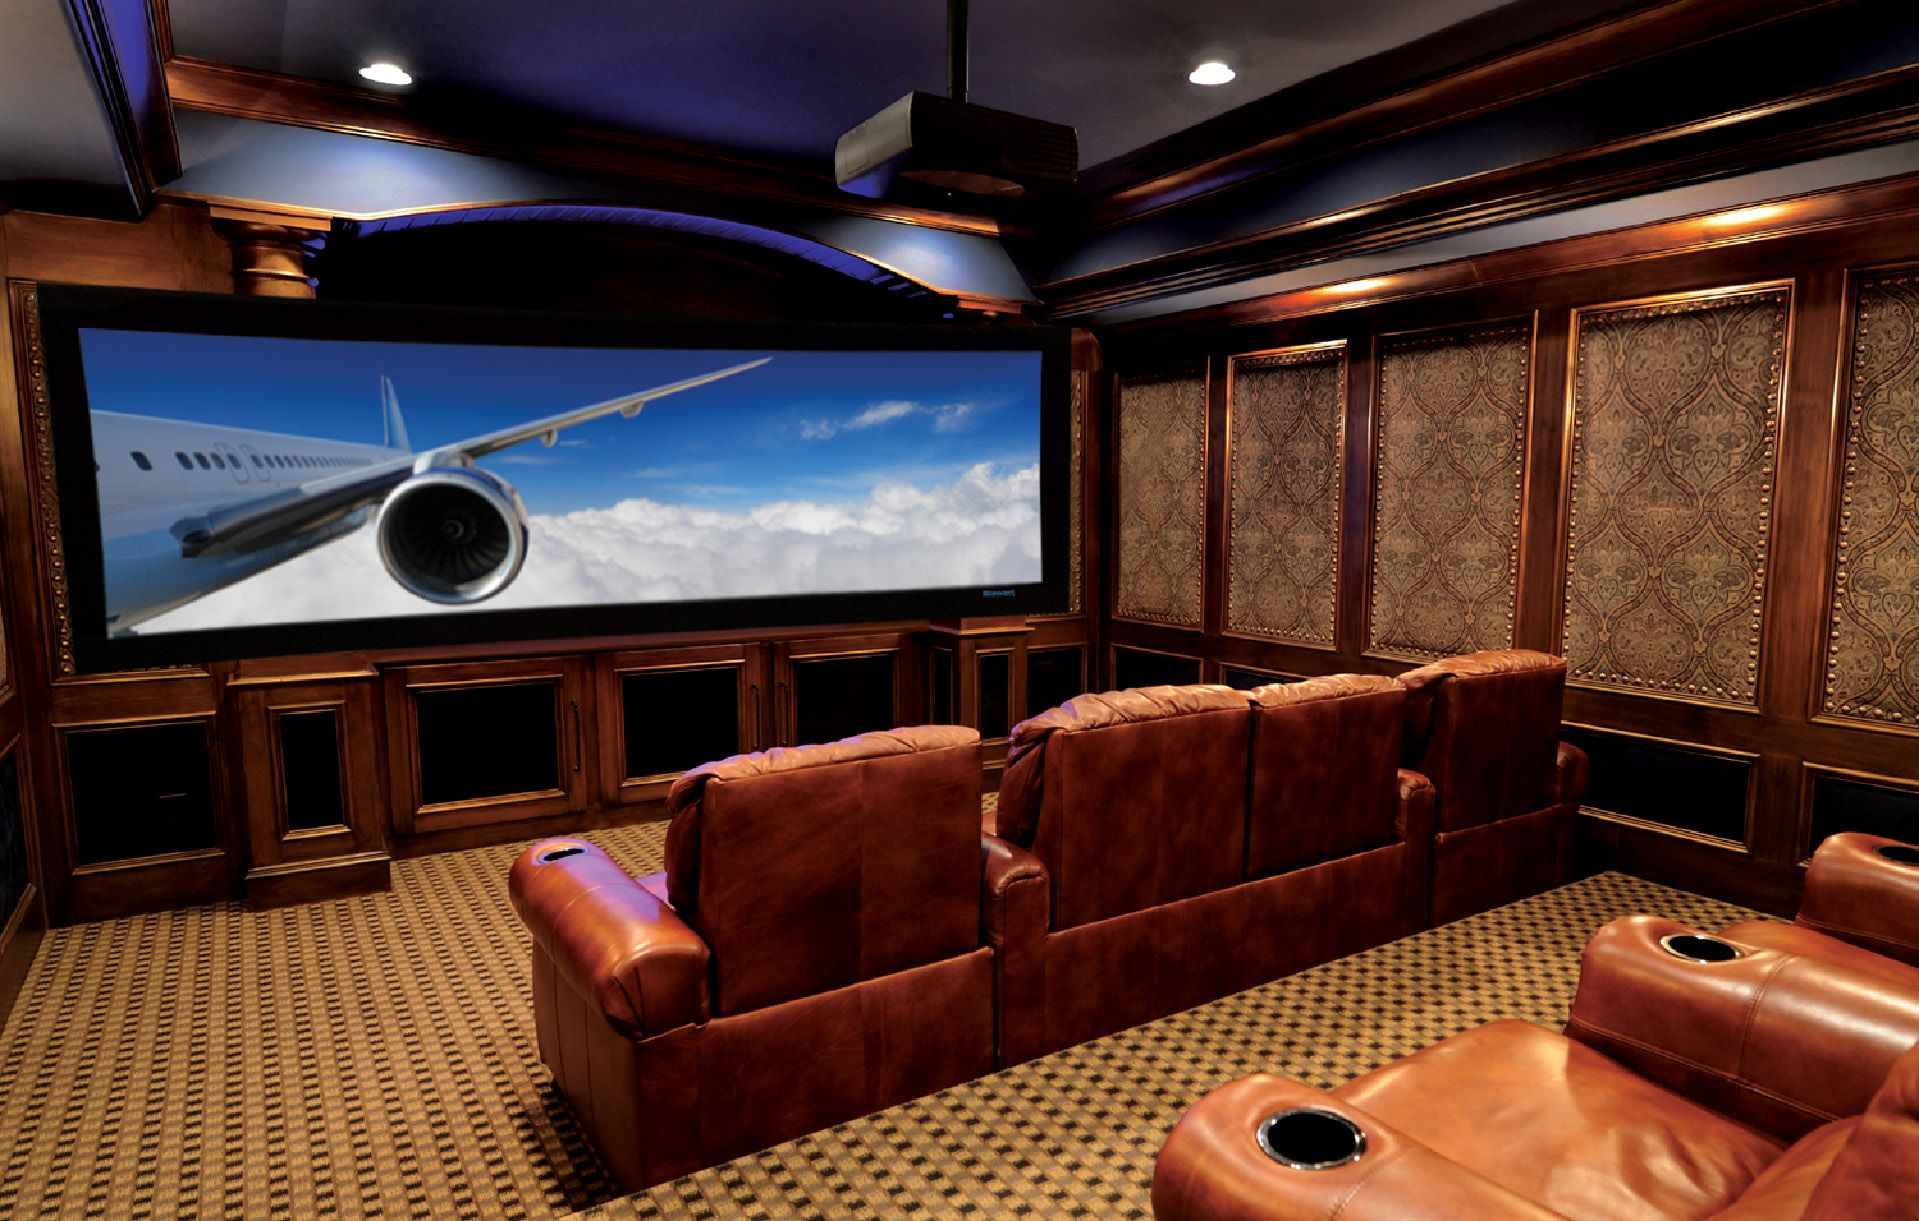 Interior Owesome Home Theatre Designs With Sweet Wallpaper And Shiny